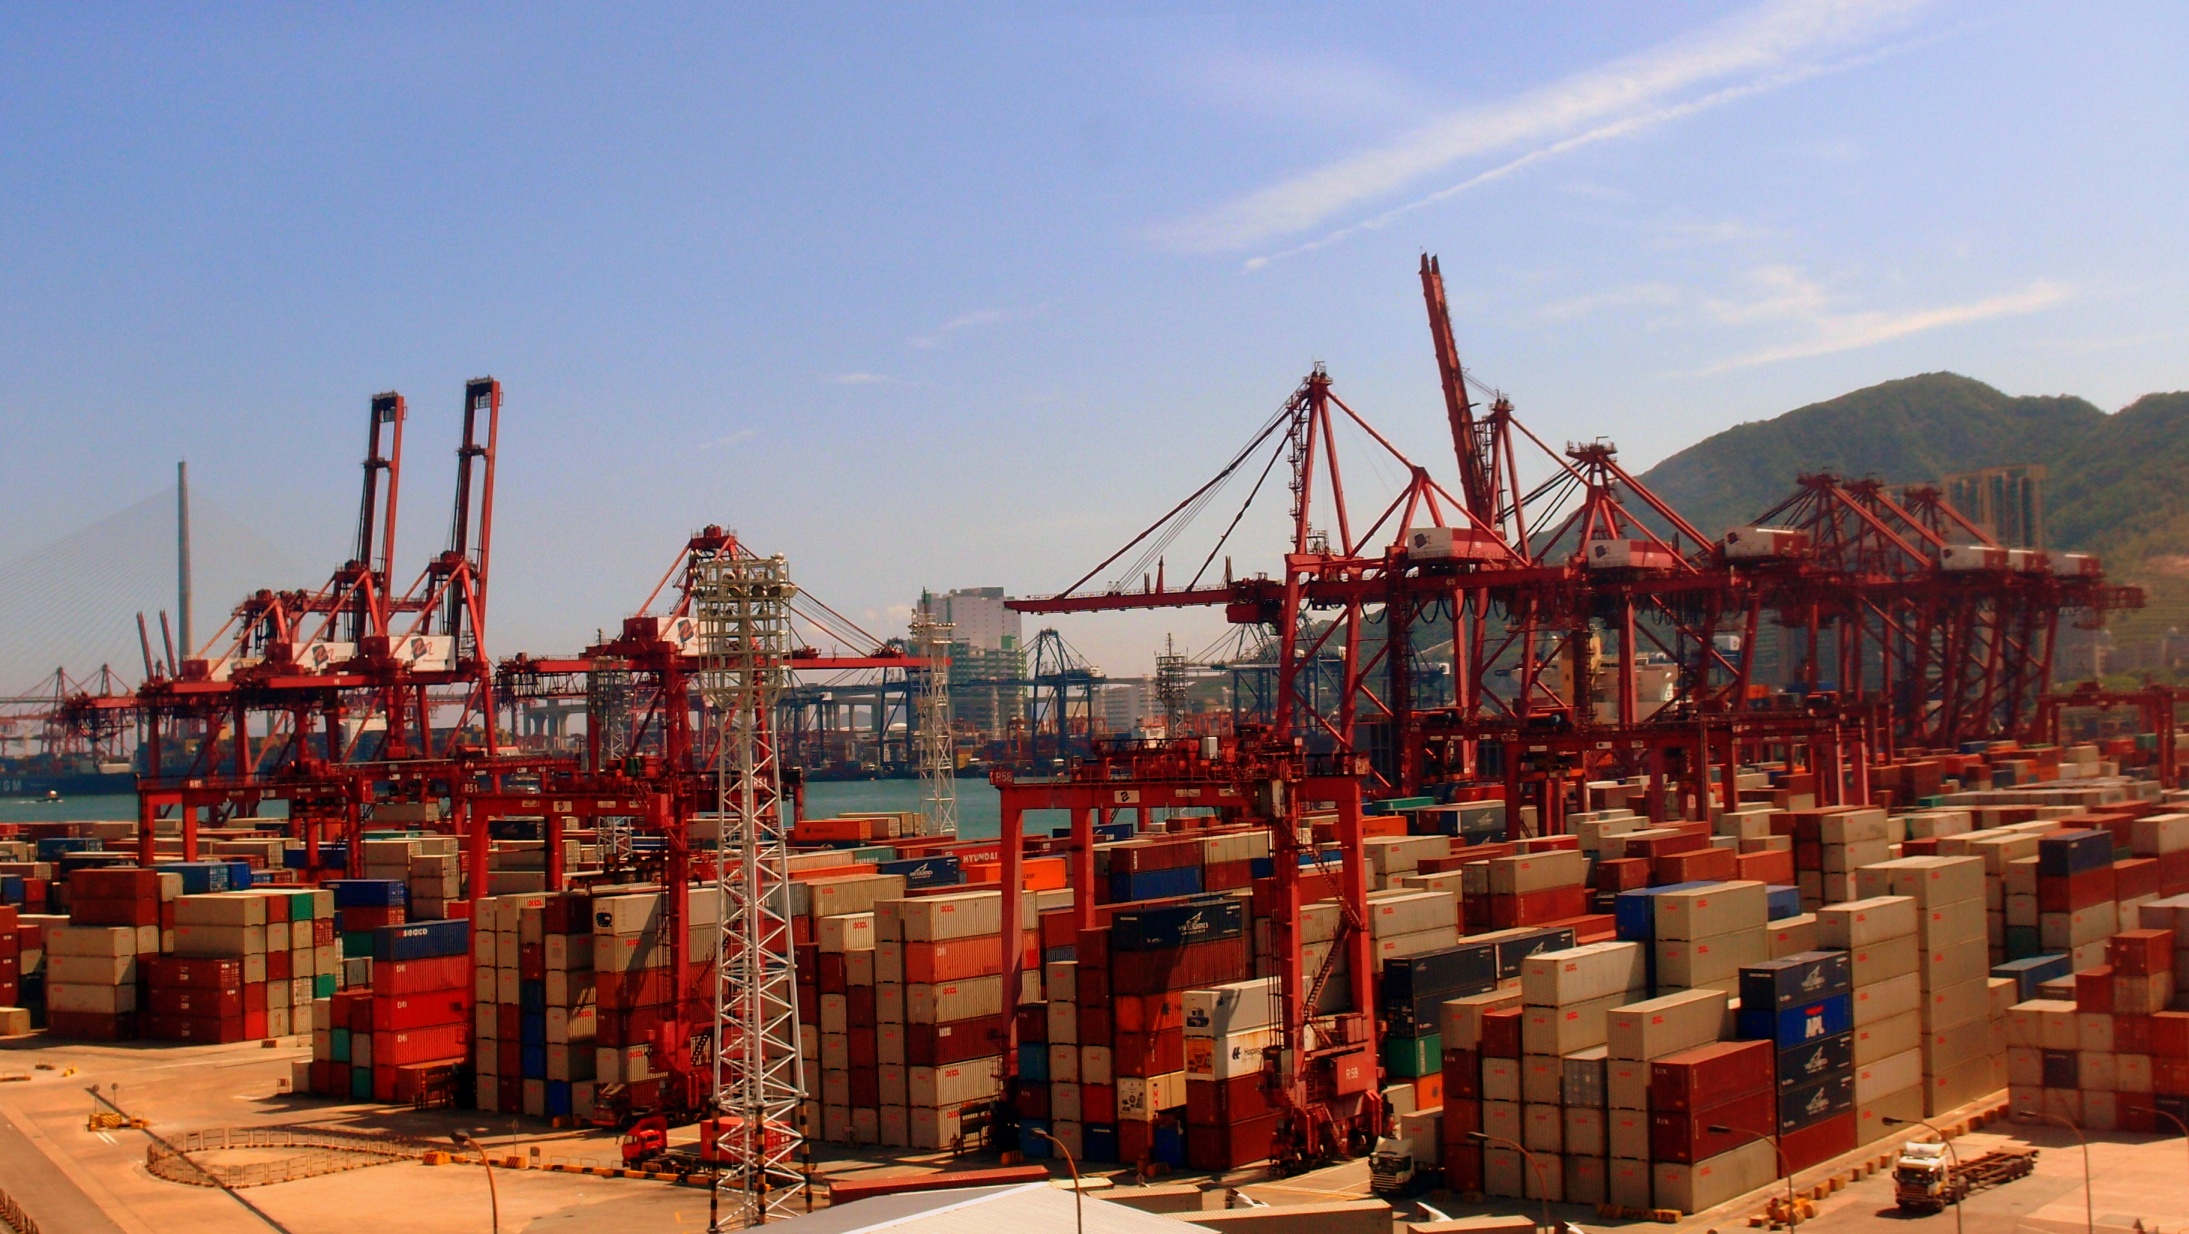 The Kwai Chung Container Port